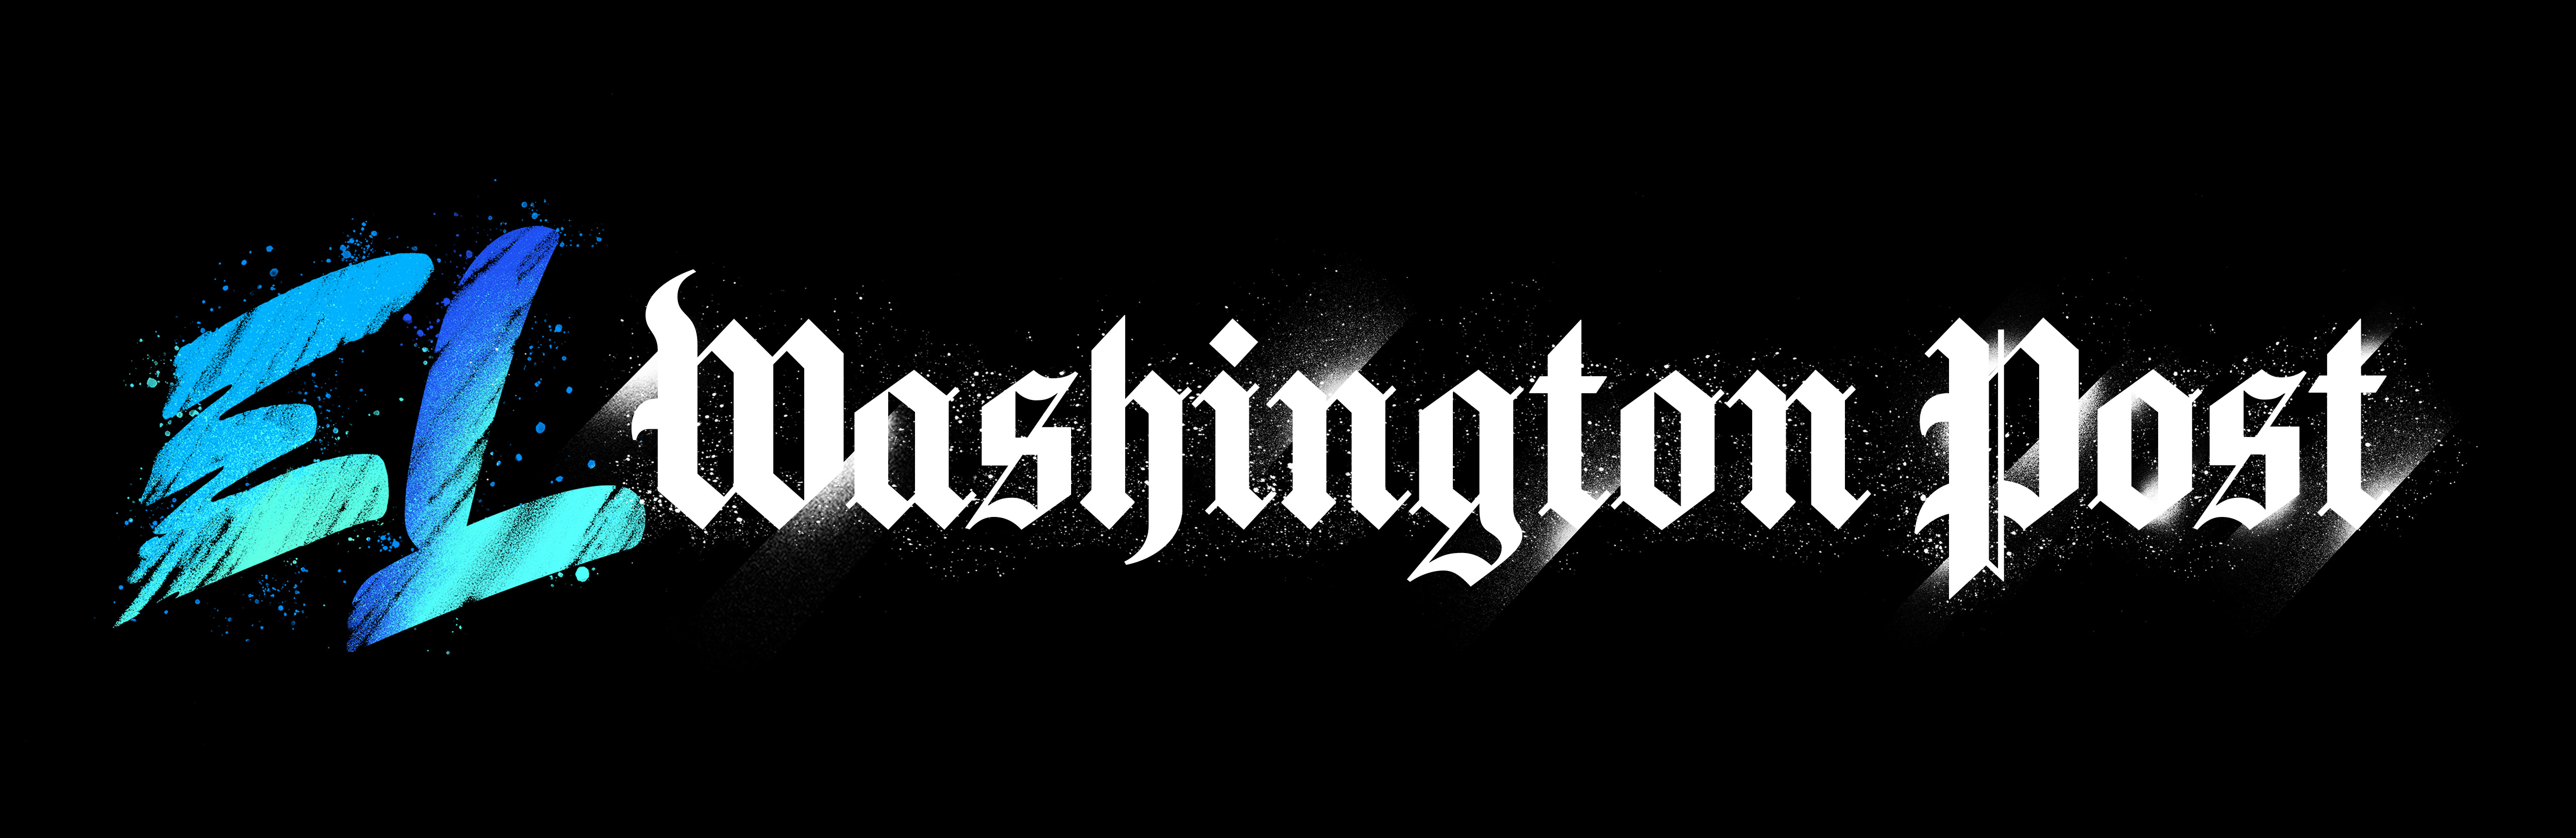 El Washington Post Series Cover Image